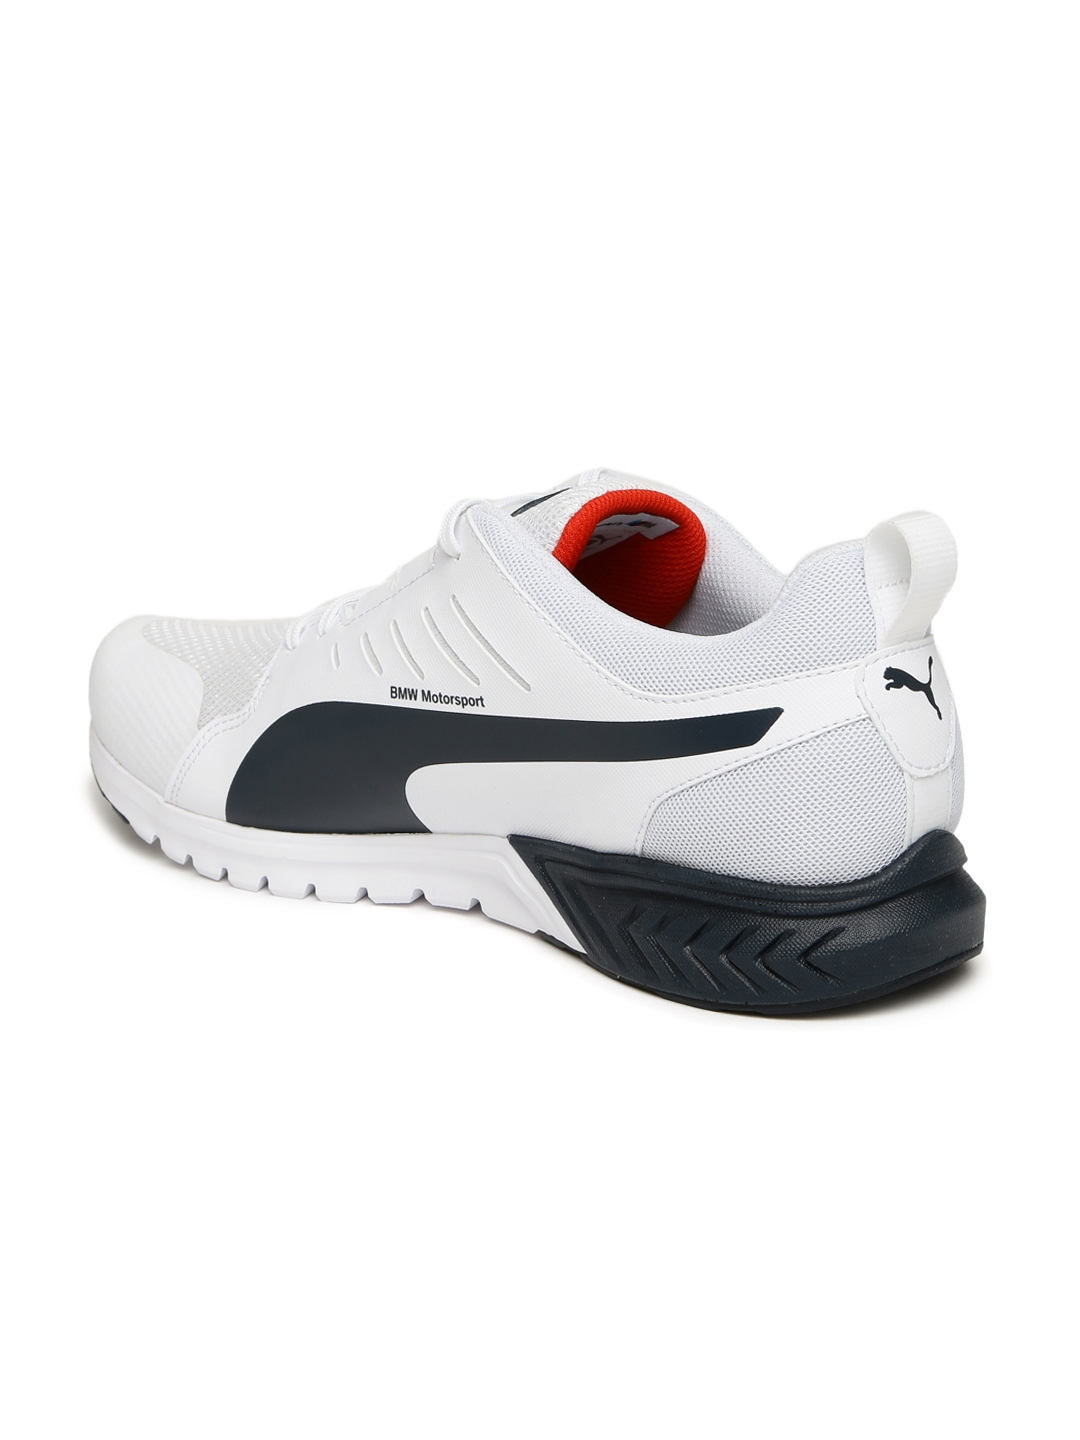 c416cf32f9b Buy Puma Unisex White BMW MS Pitlane Sneakers - Casual Shoes for ...